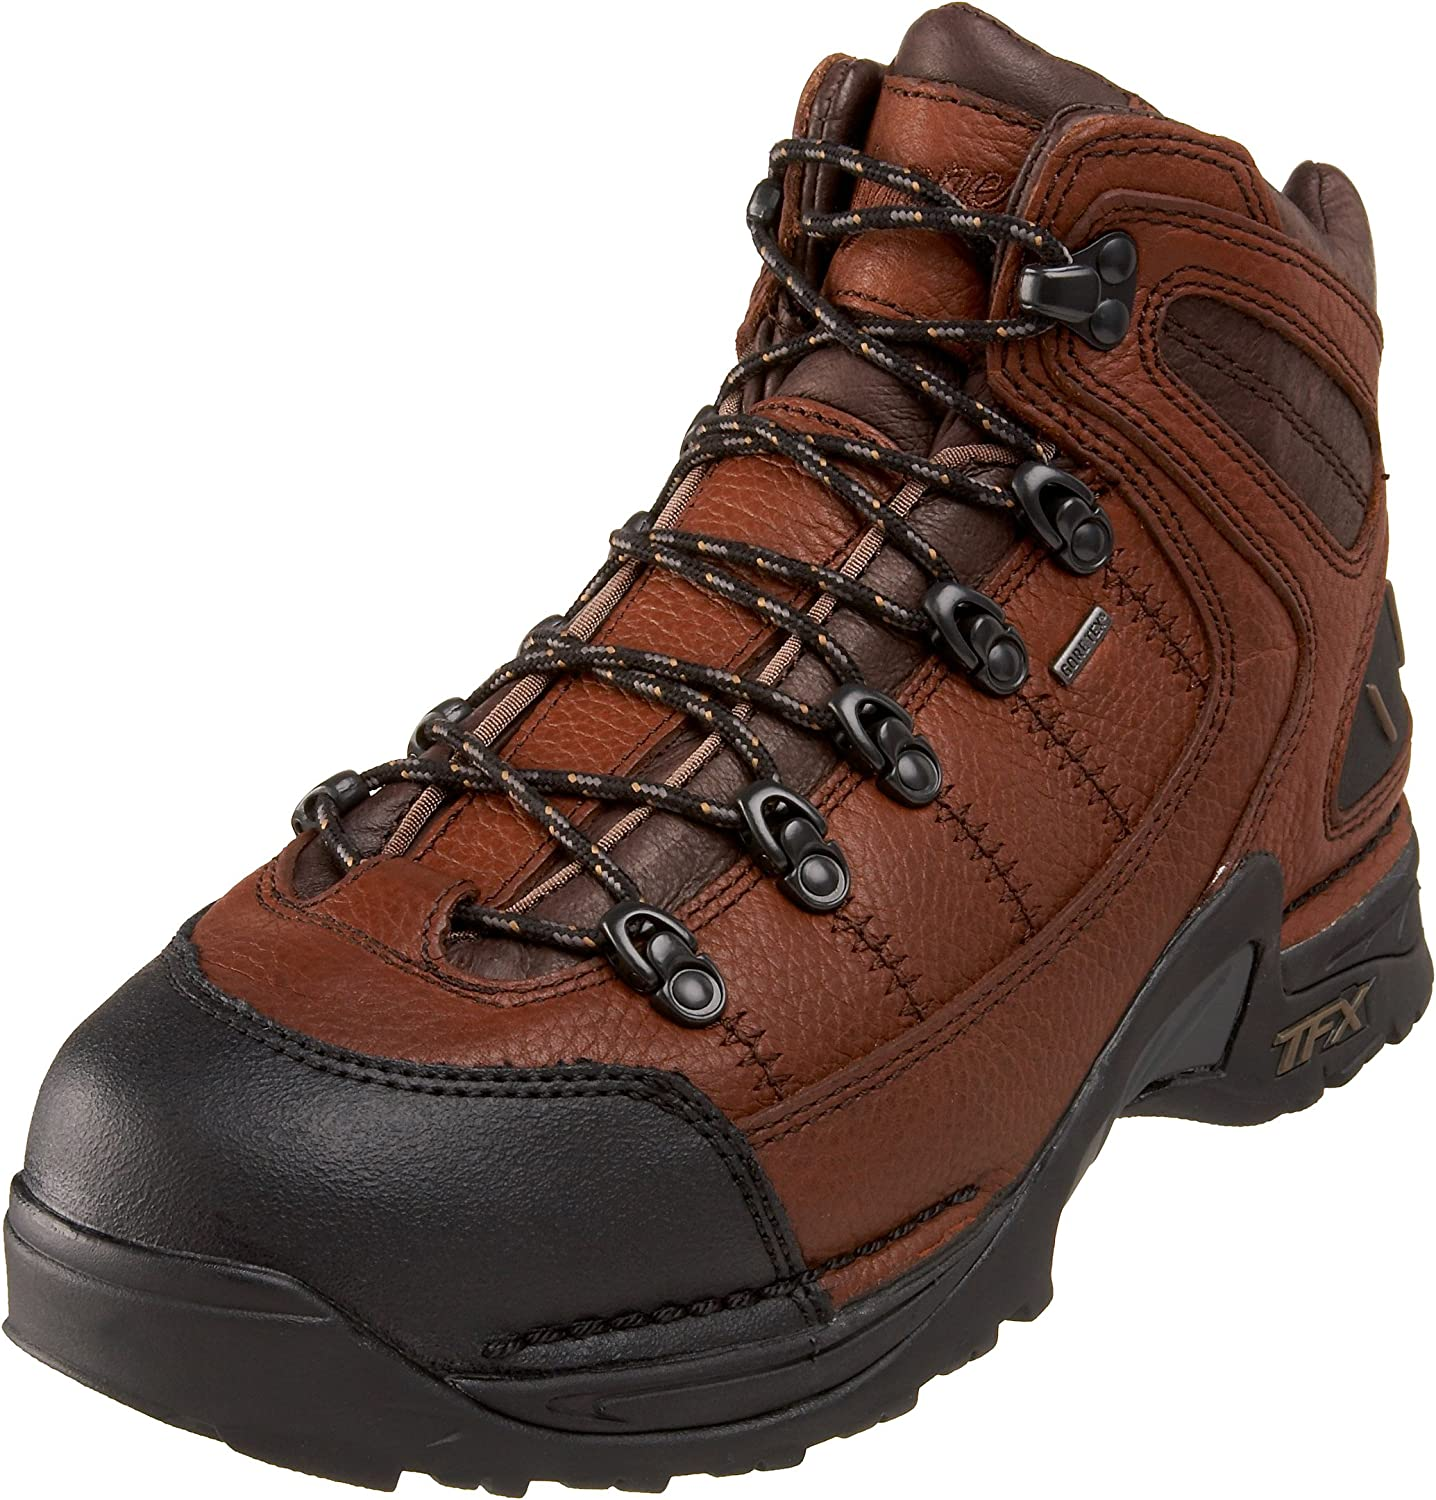 Danner Men s 453 5.5 Gore-Tex Hiking Boot